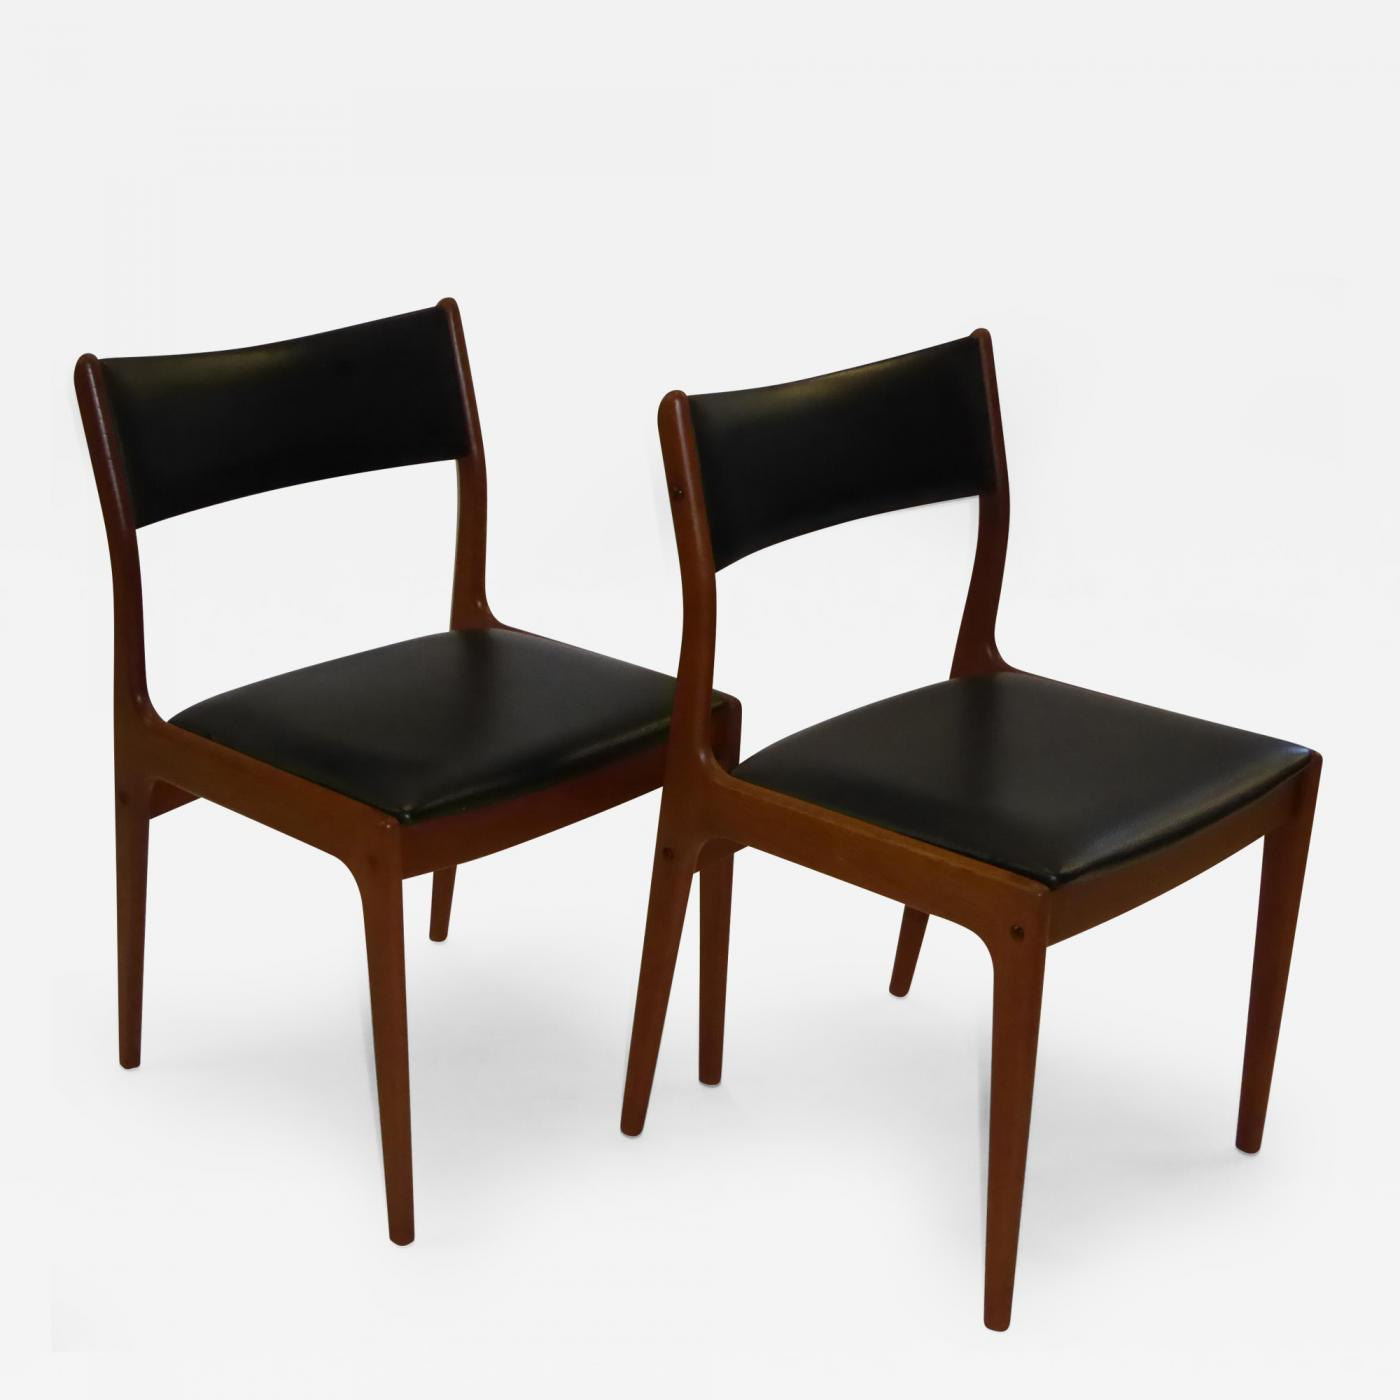 johannes andersen  four teak danish dining chairs by uldum  - listings  furniture  seating  dining chairs